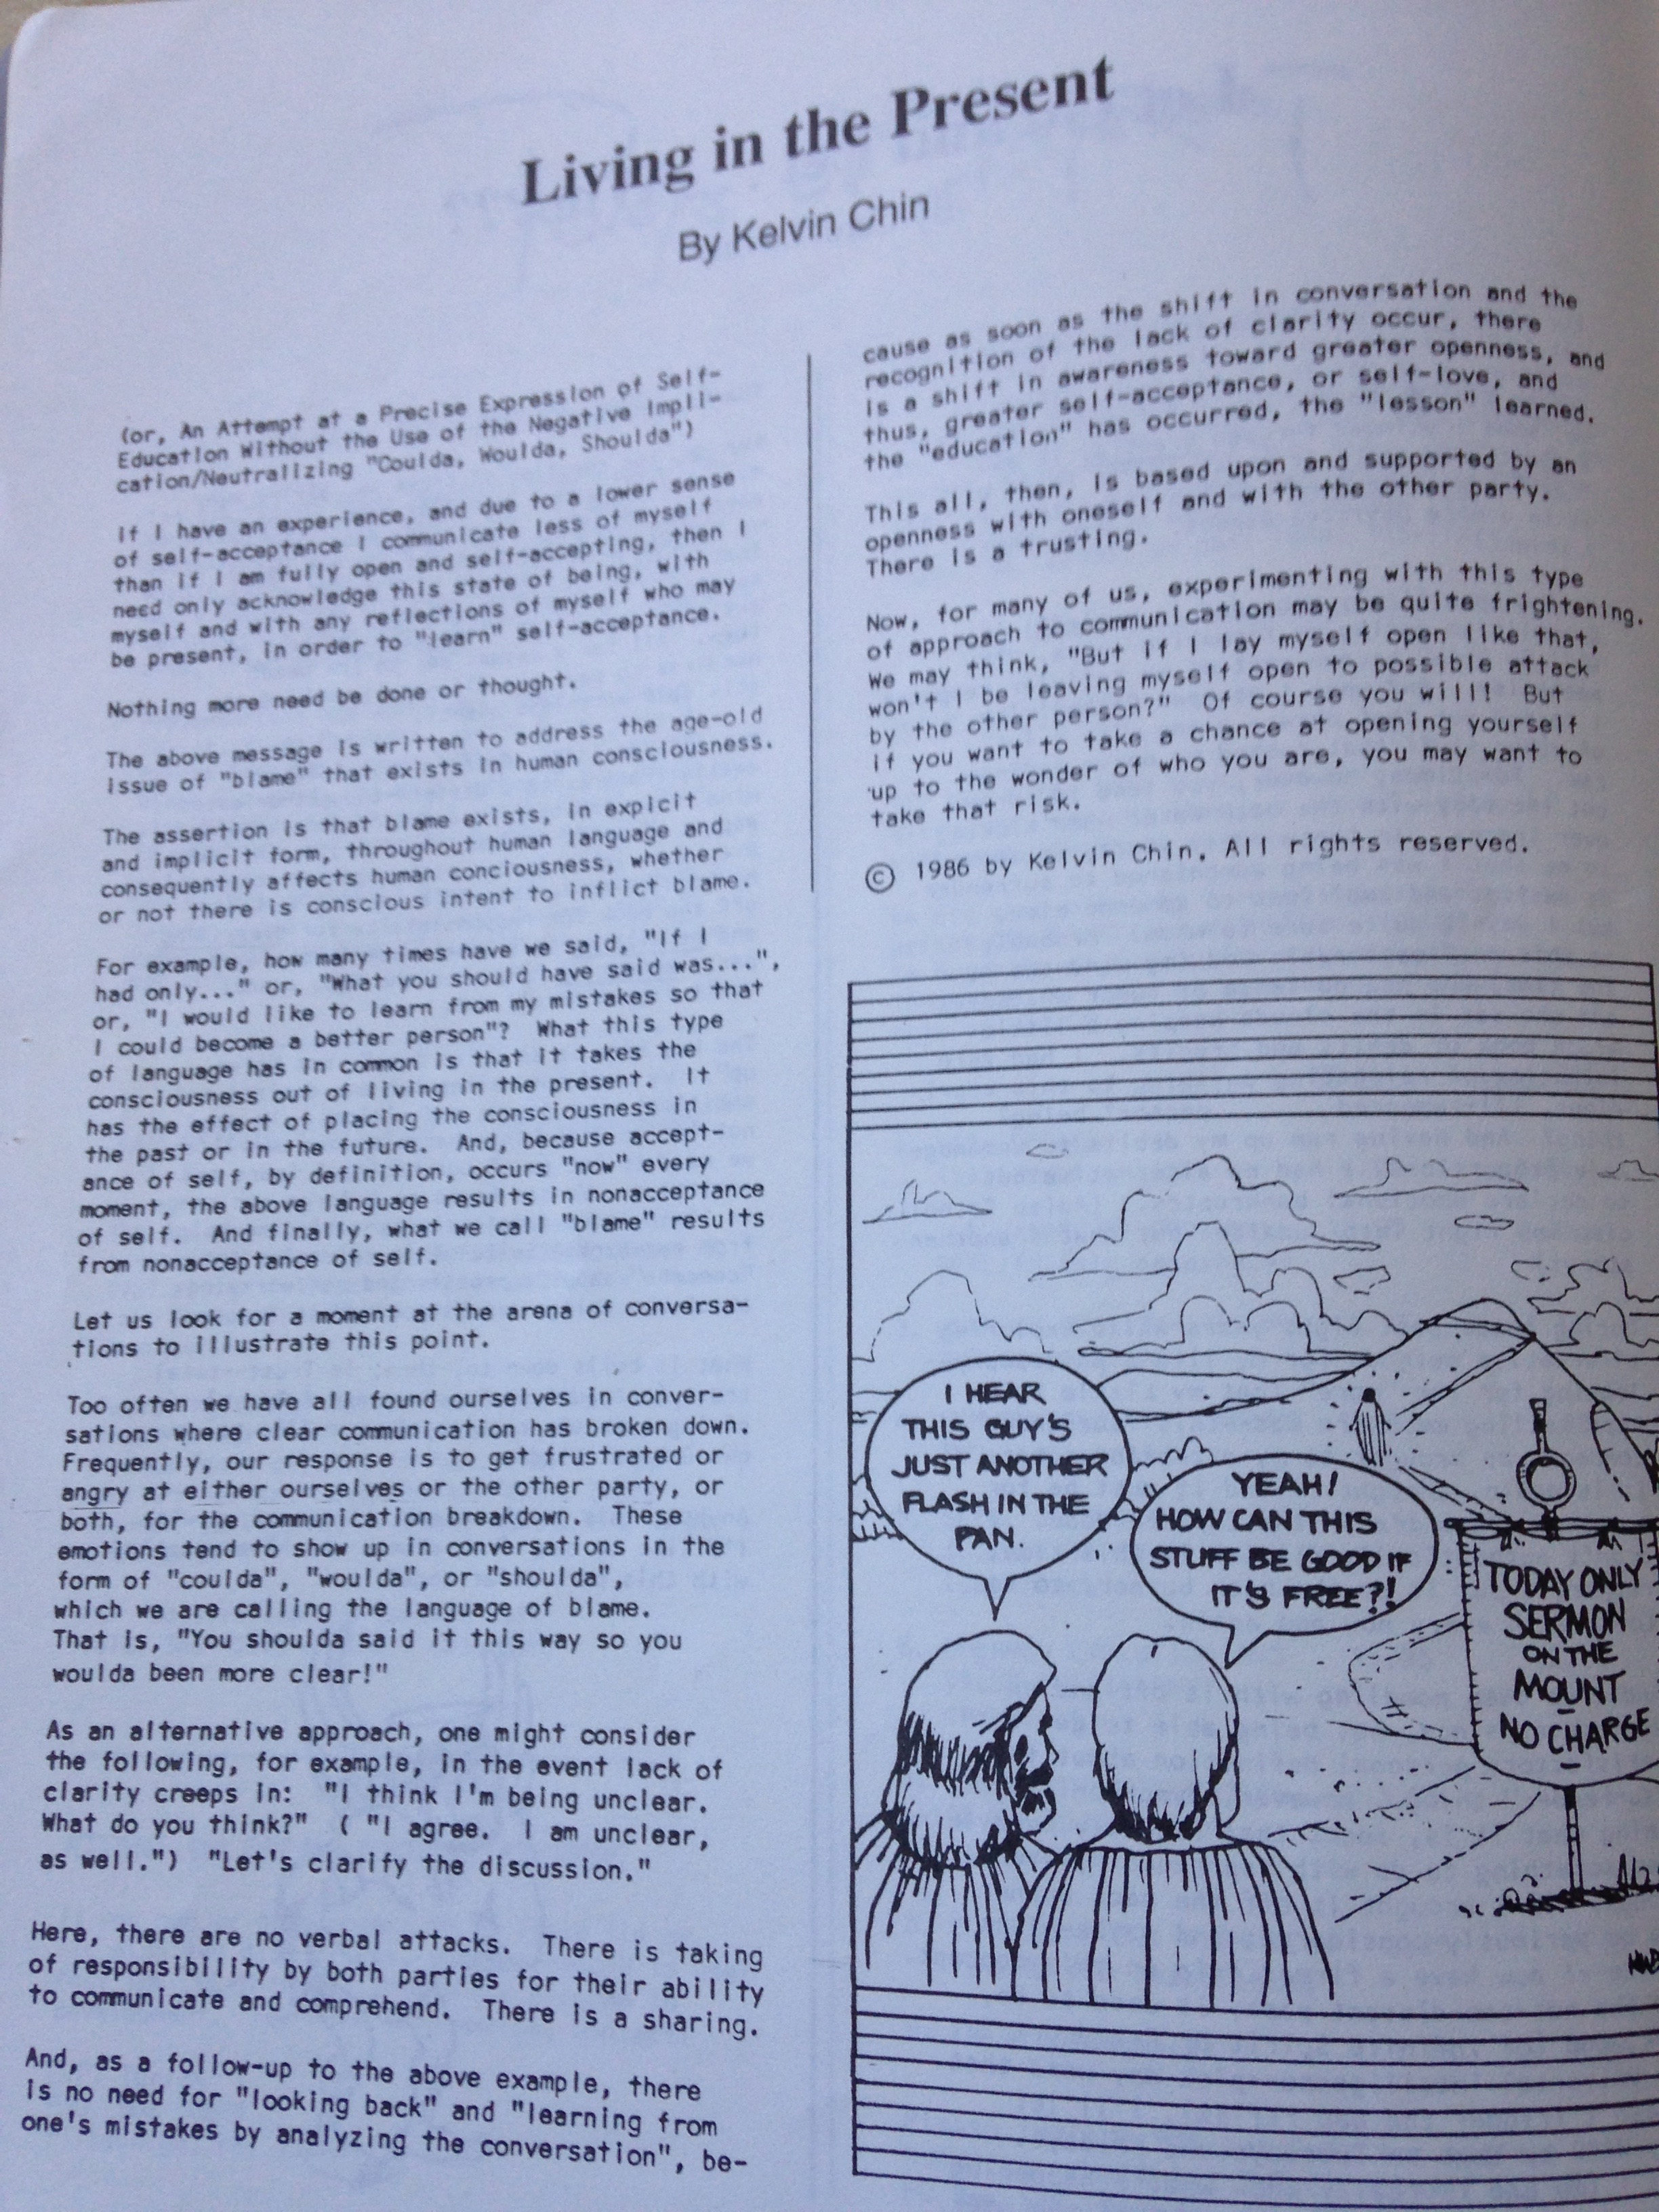 The Coordinate Point , Vol. III No. 3, May-June 1987 [photo of the original publication]